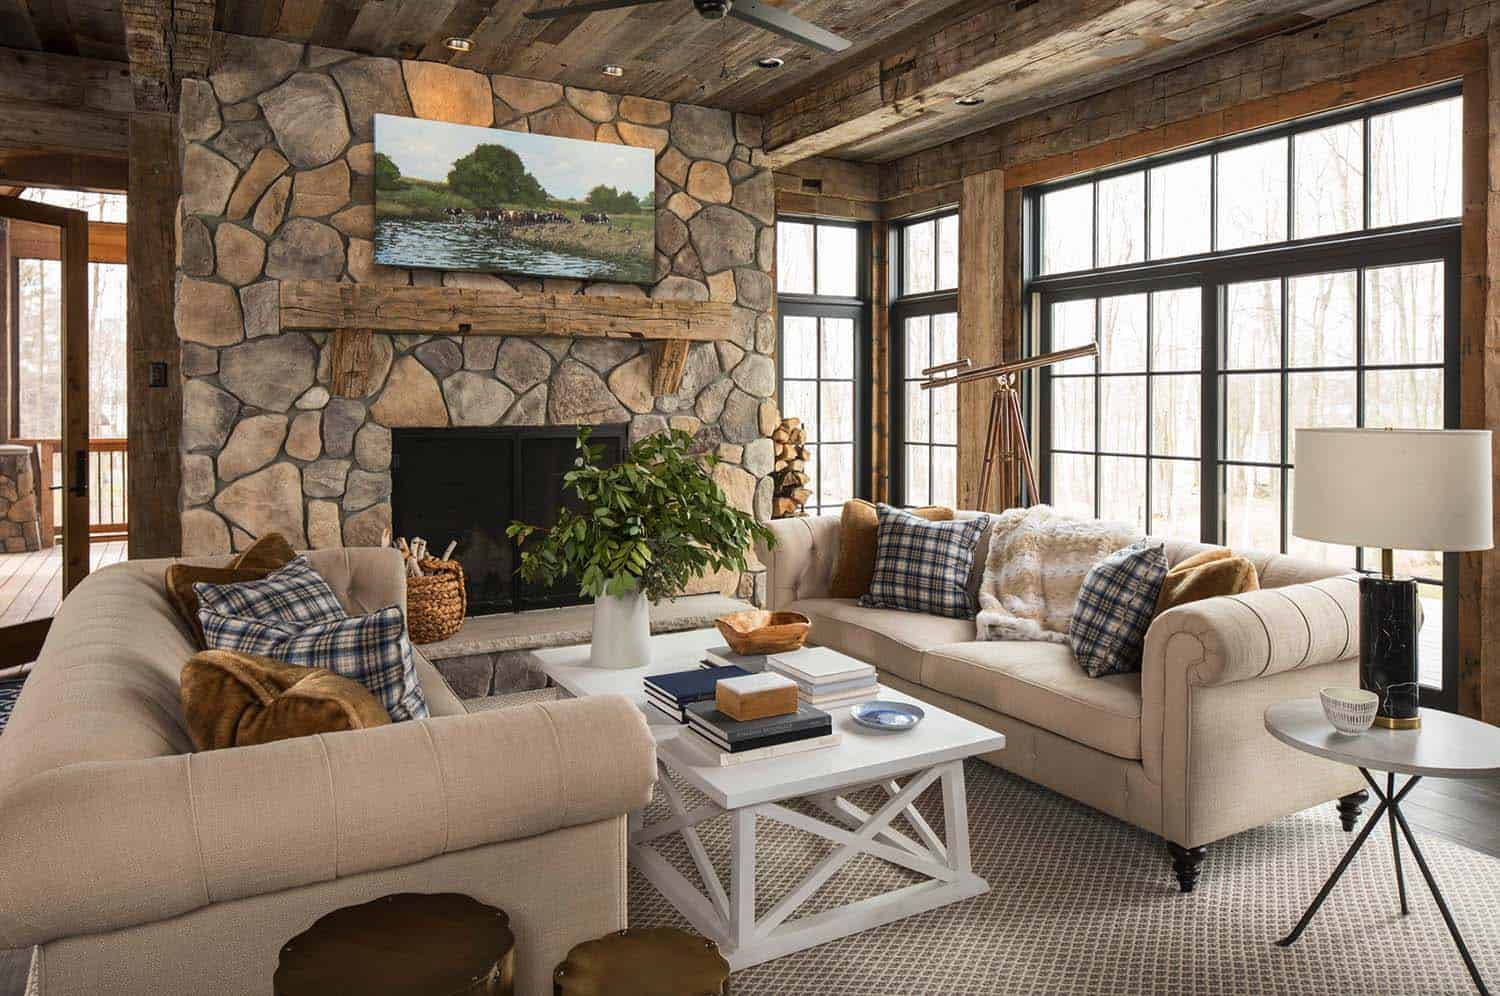 Rustic Lake House-Martha OHara Interiors-01-1 Kindesign